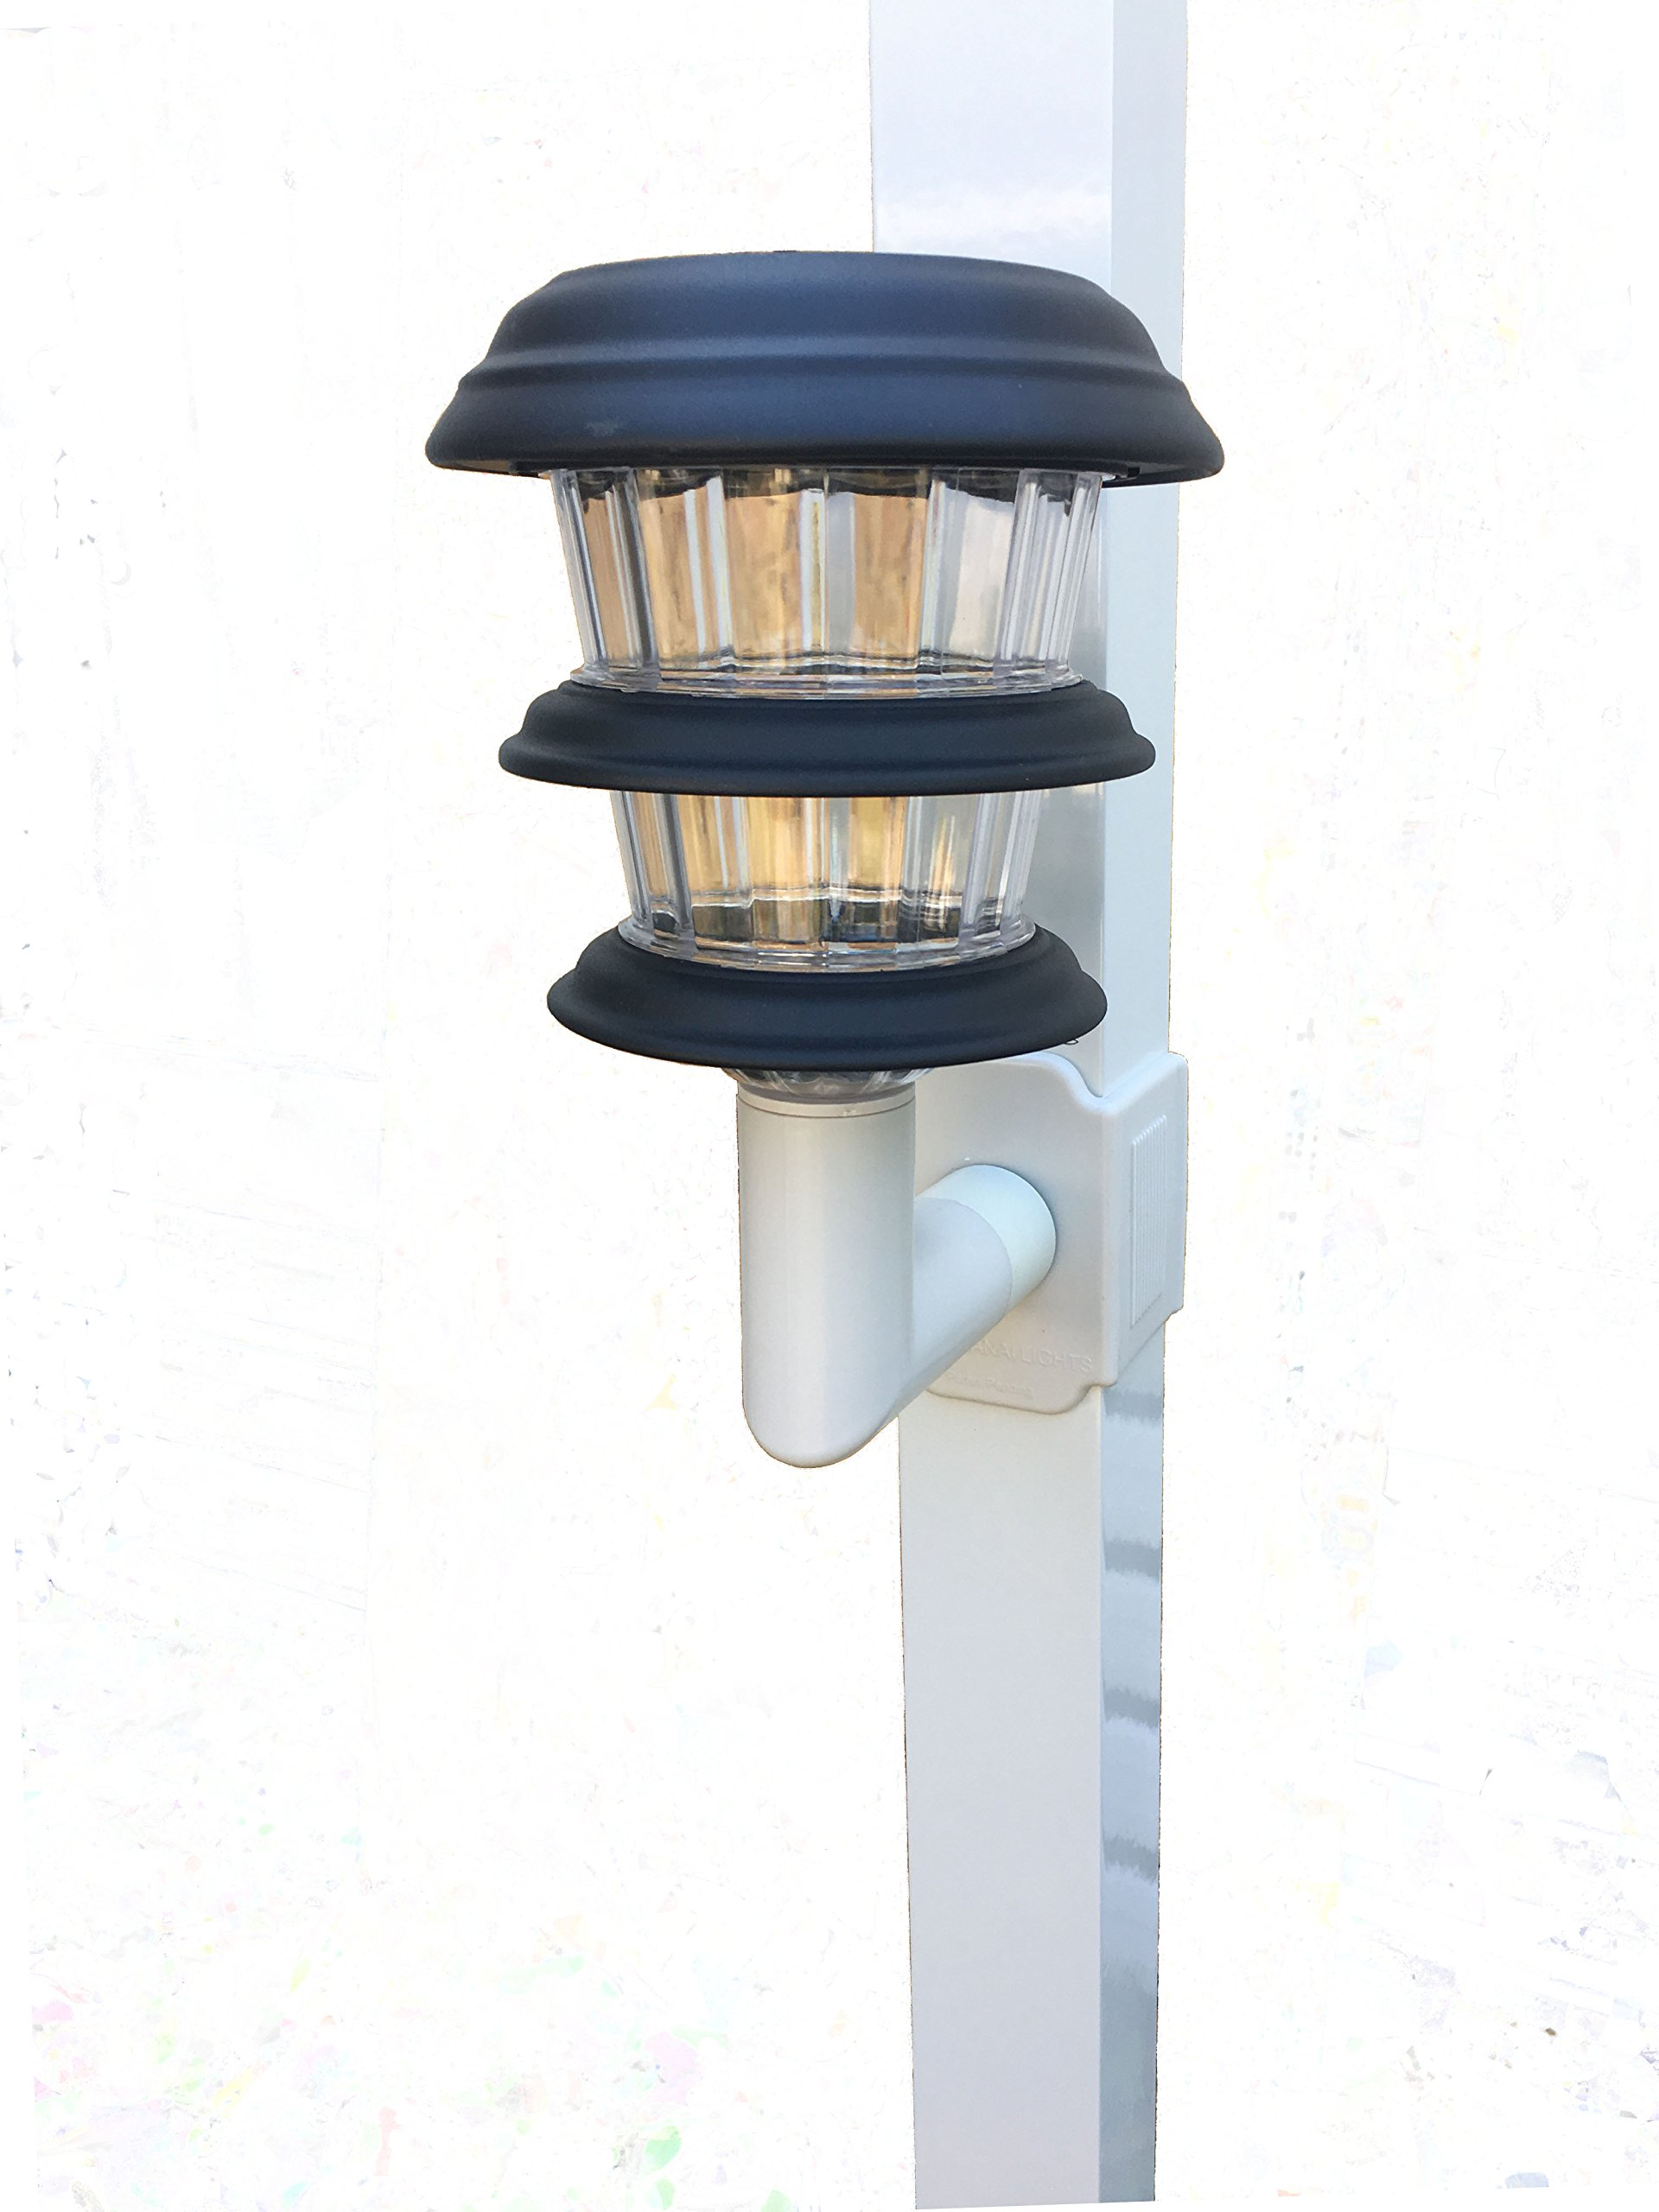 Solar Lanai Lights 1 Light Per Package. Brightness of light- 10 Lumens for Patio's, Screen Enclosures and Pool Cage Lighting